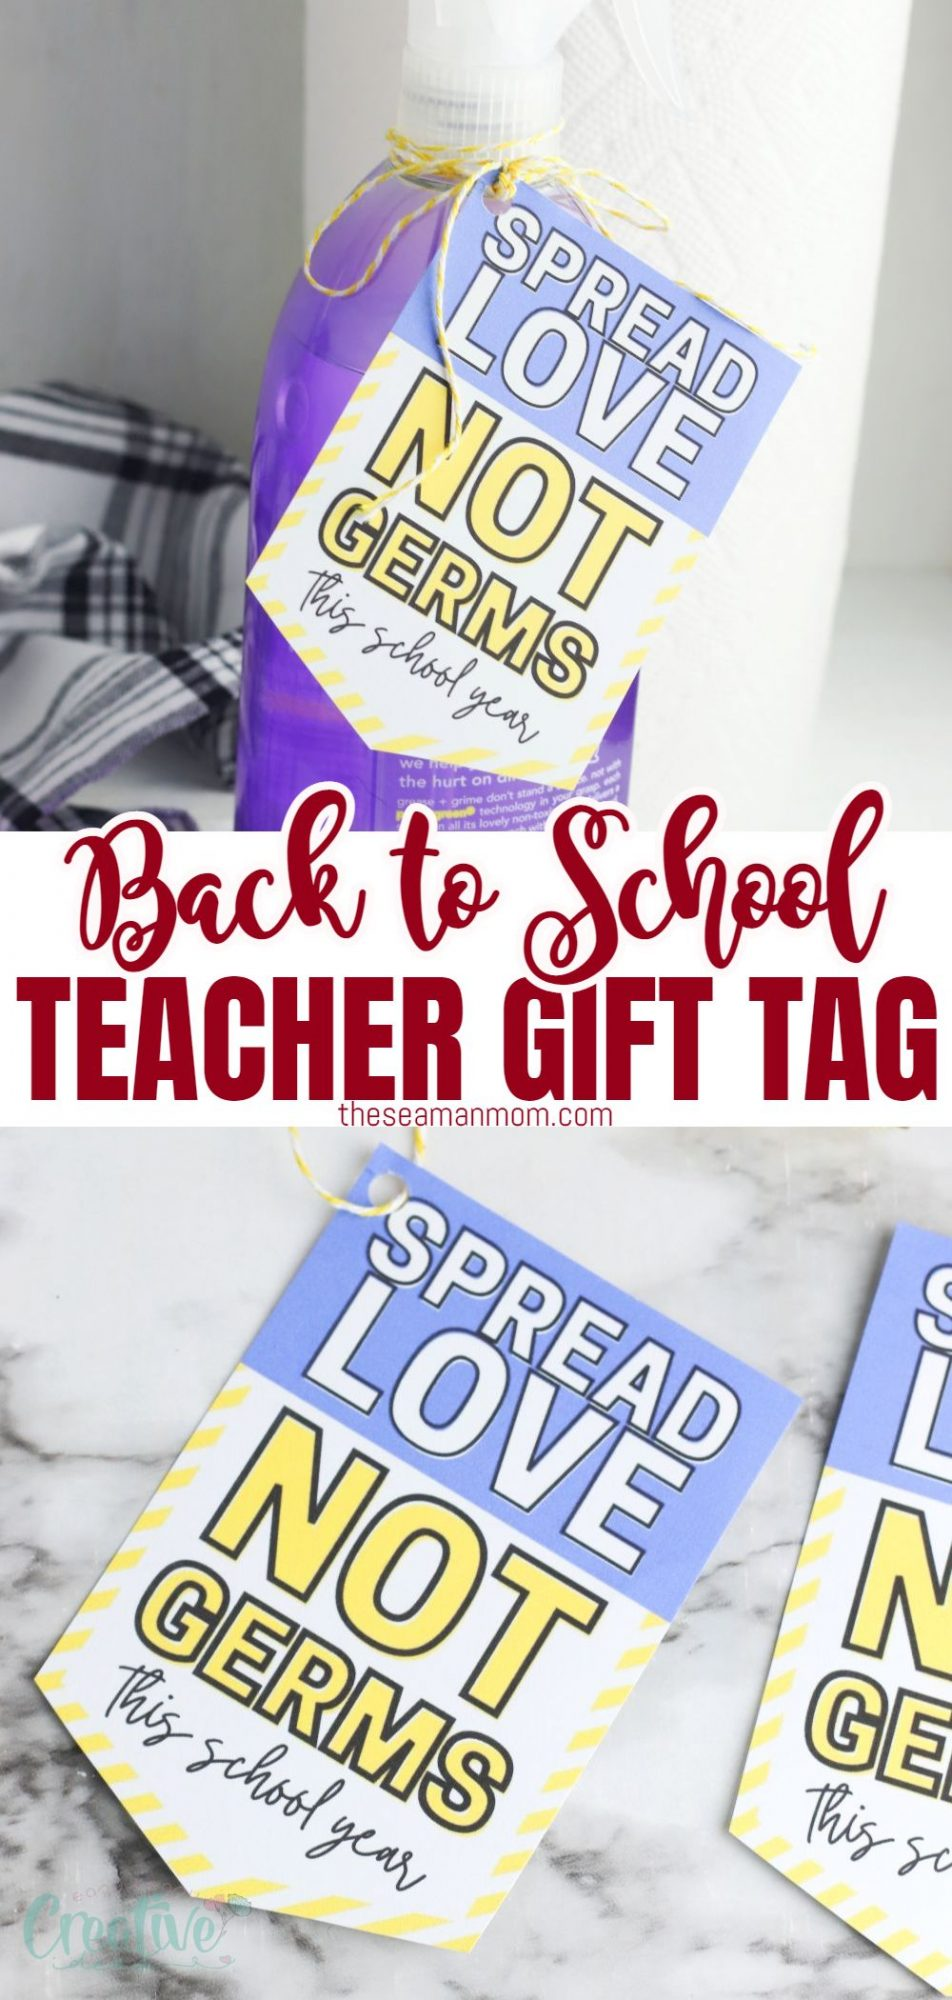 Photo collage featuring a teacher appreciation tag for cleaning supplies gifts